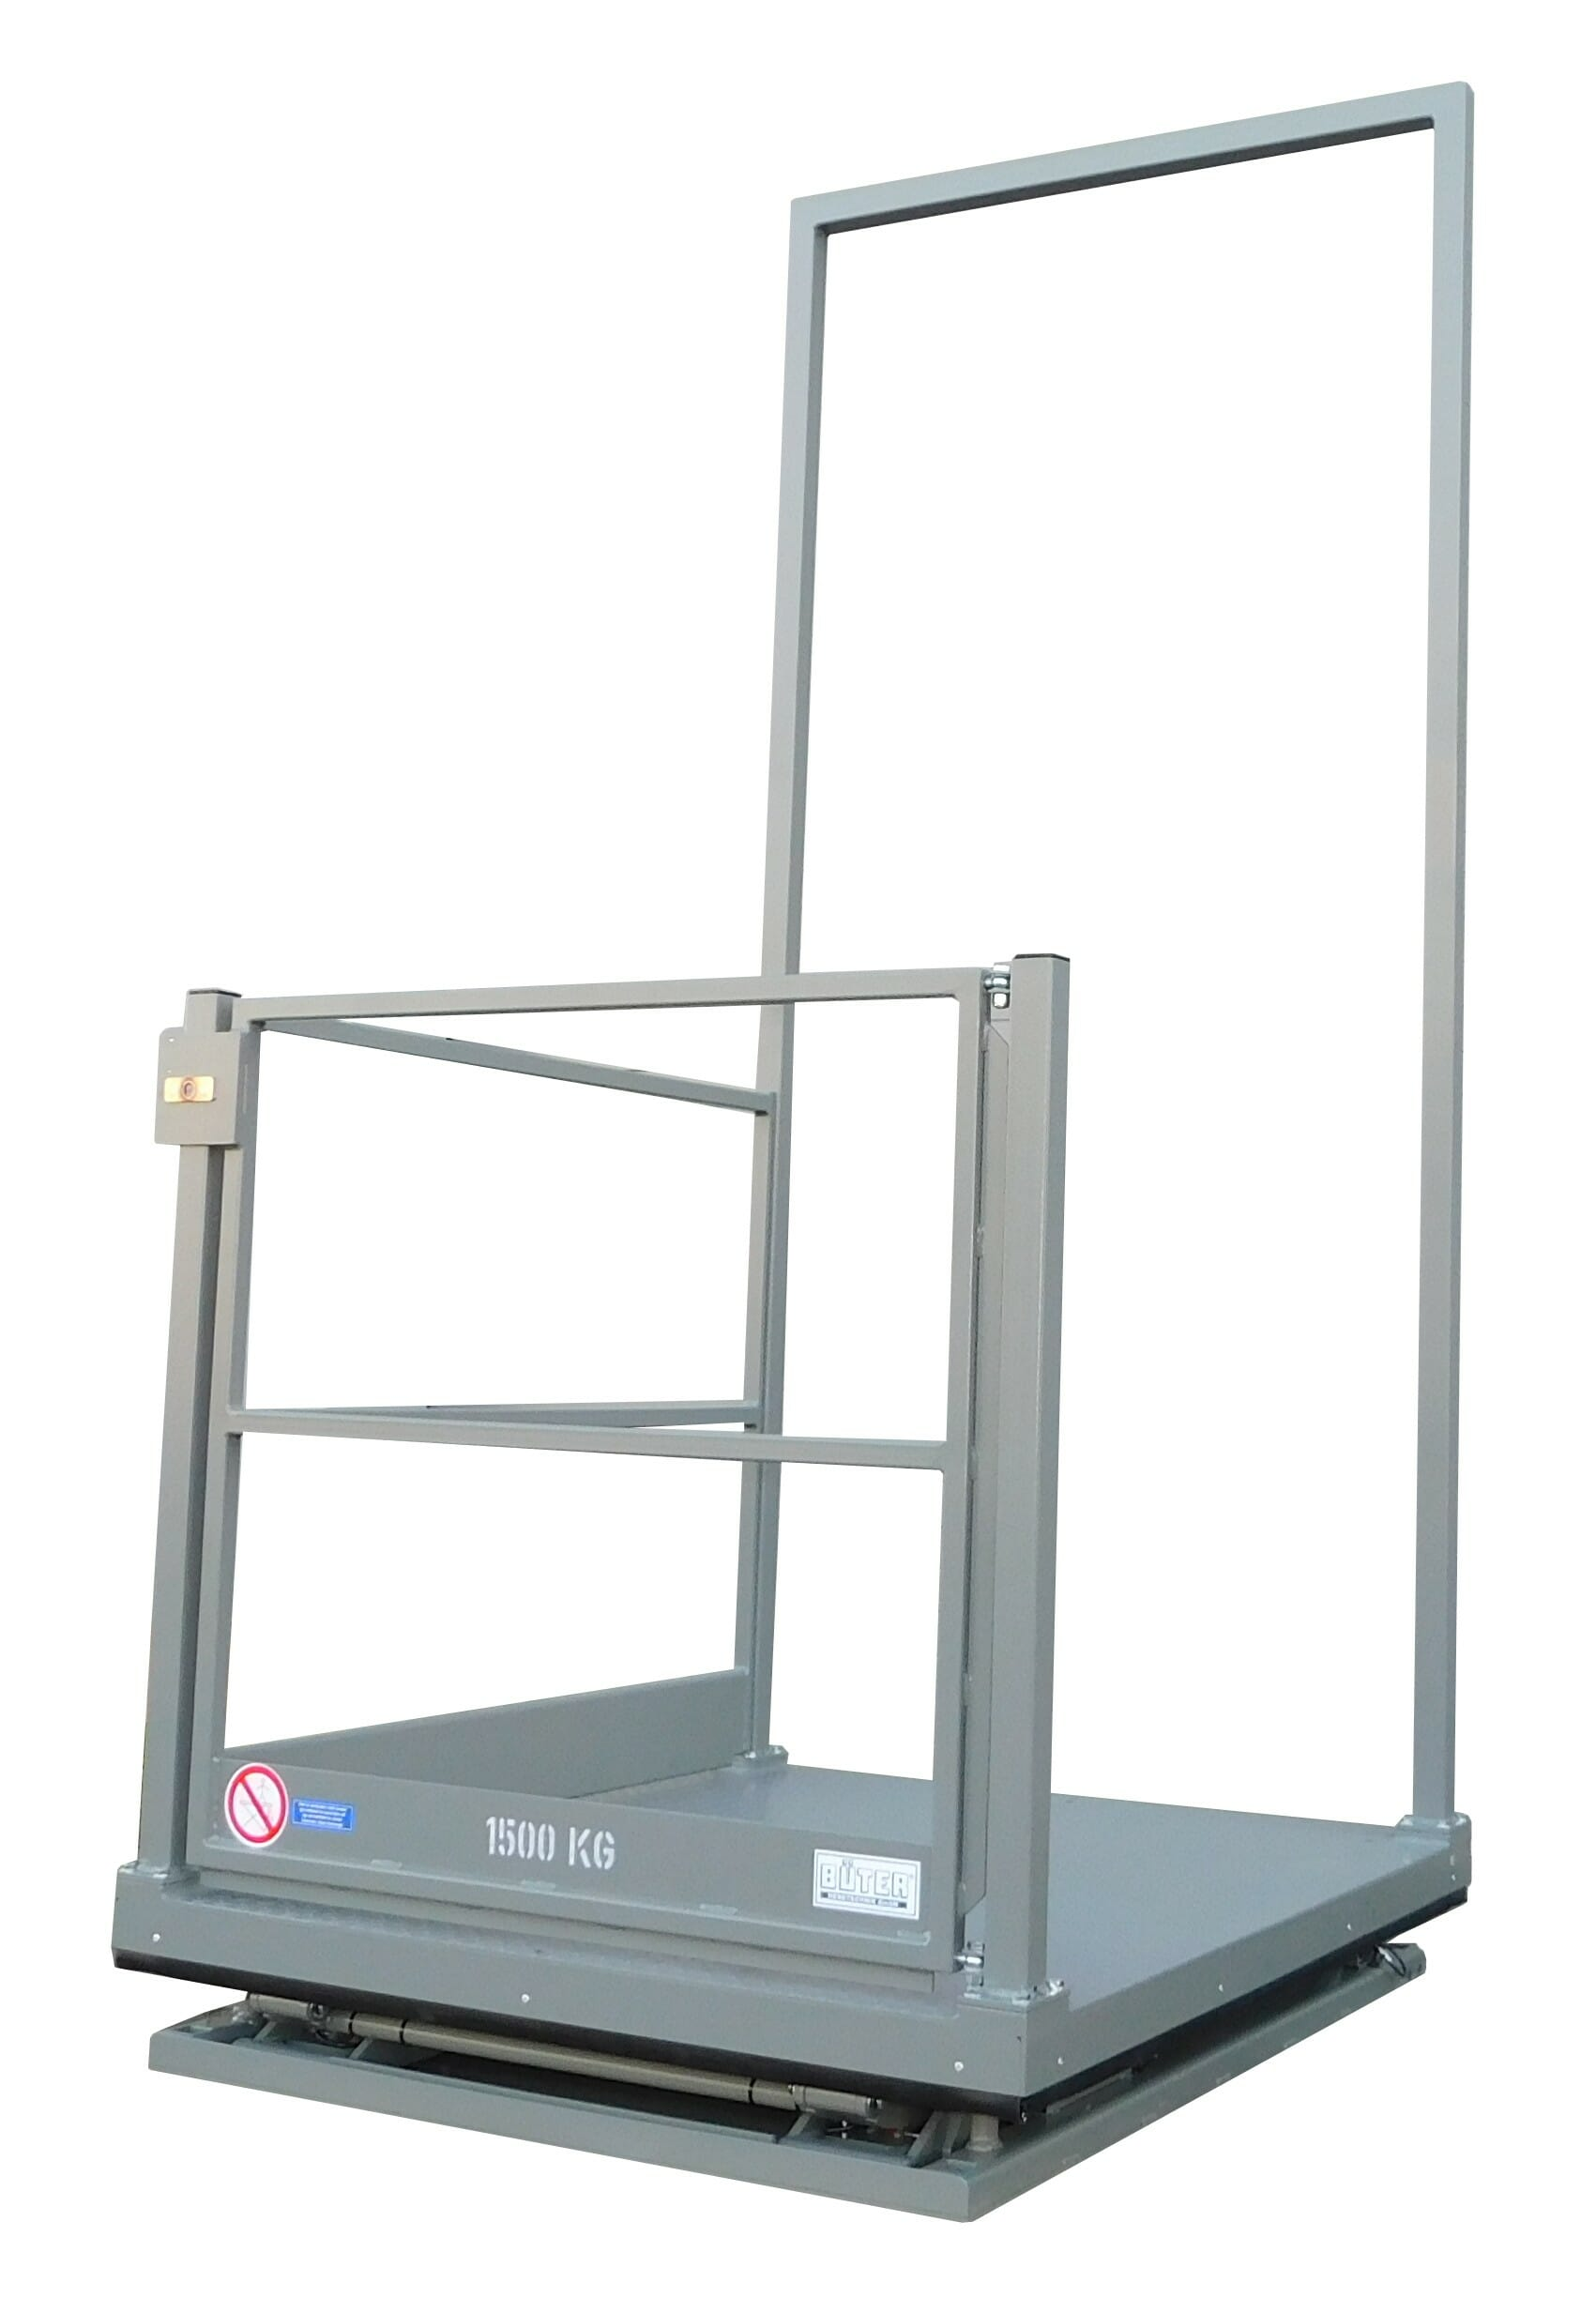 Figure Flat lifting table in grey retracted